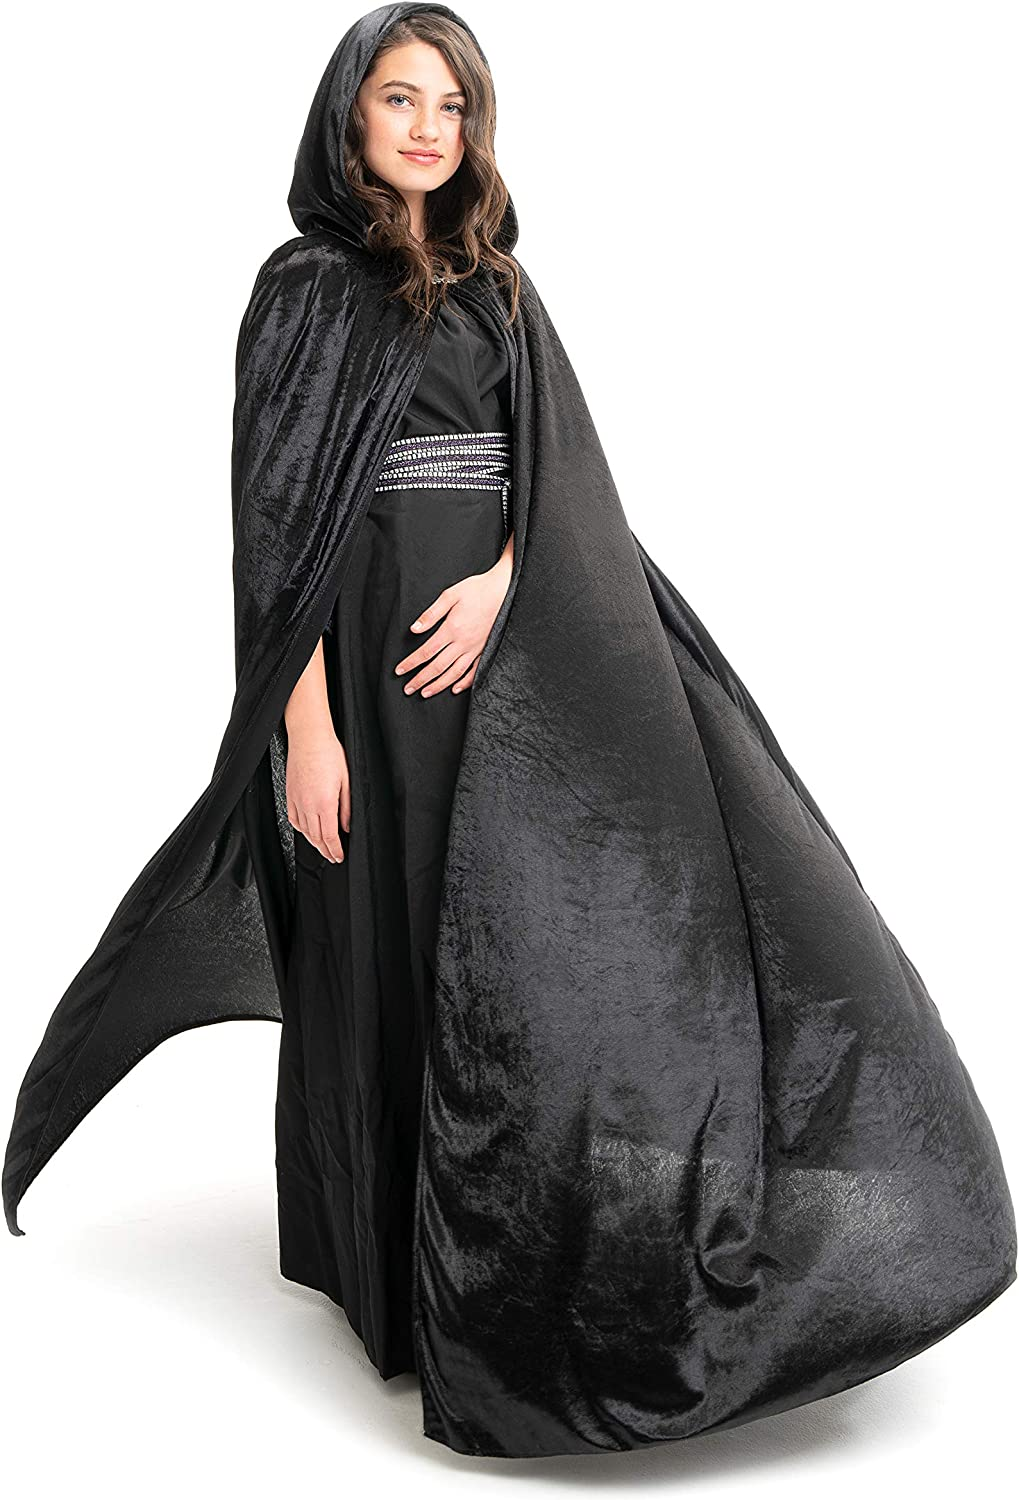 Little Adventures Deluxe Velvet Adult Cloak Cape with Lined Hood (Black): Clothing